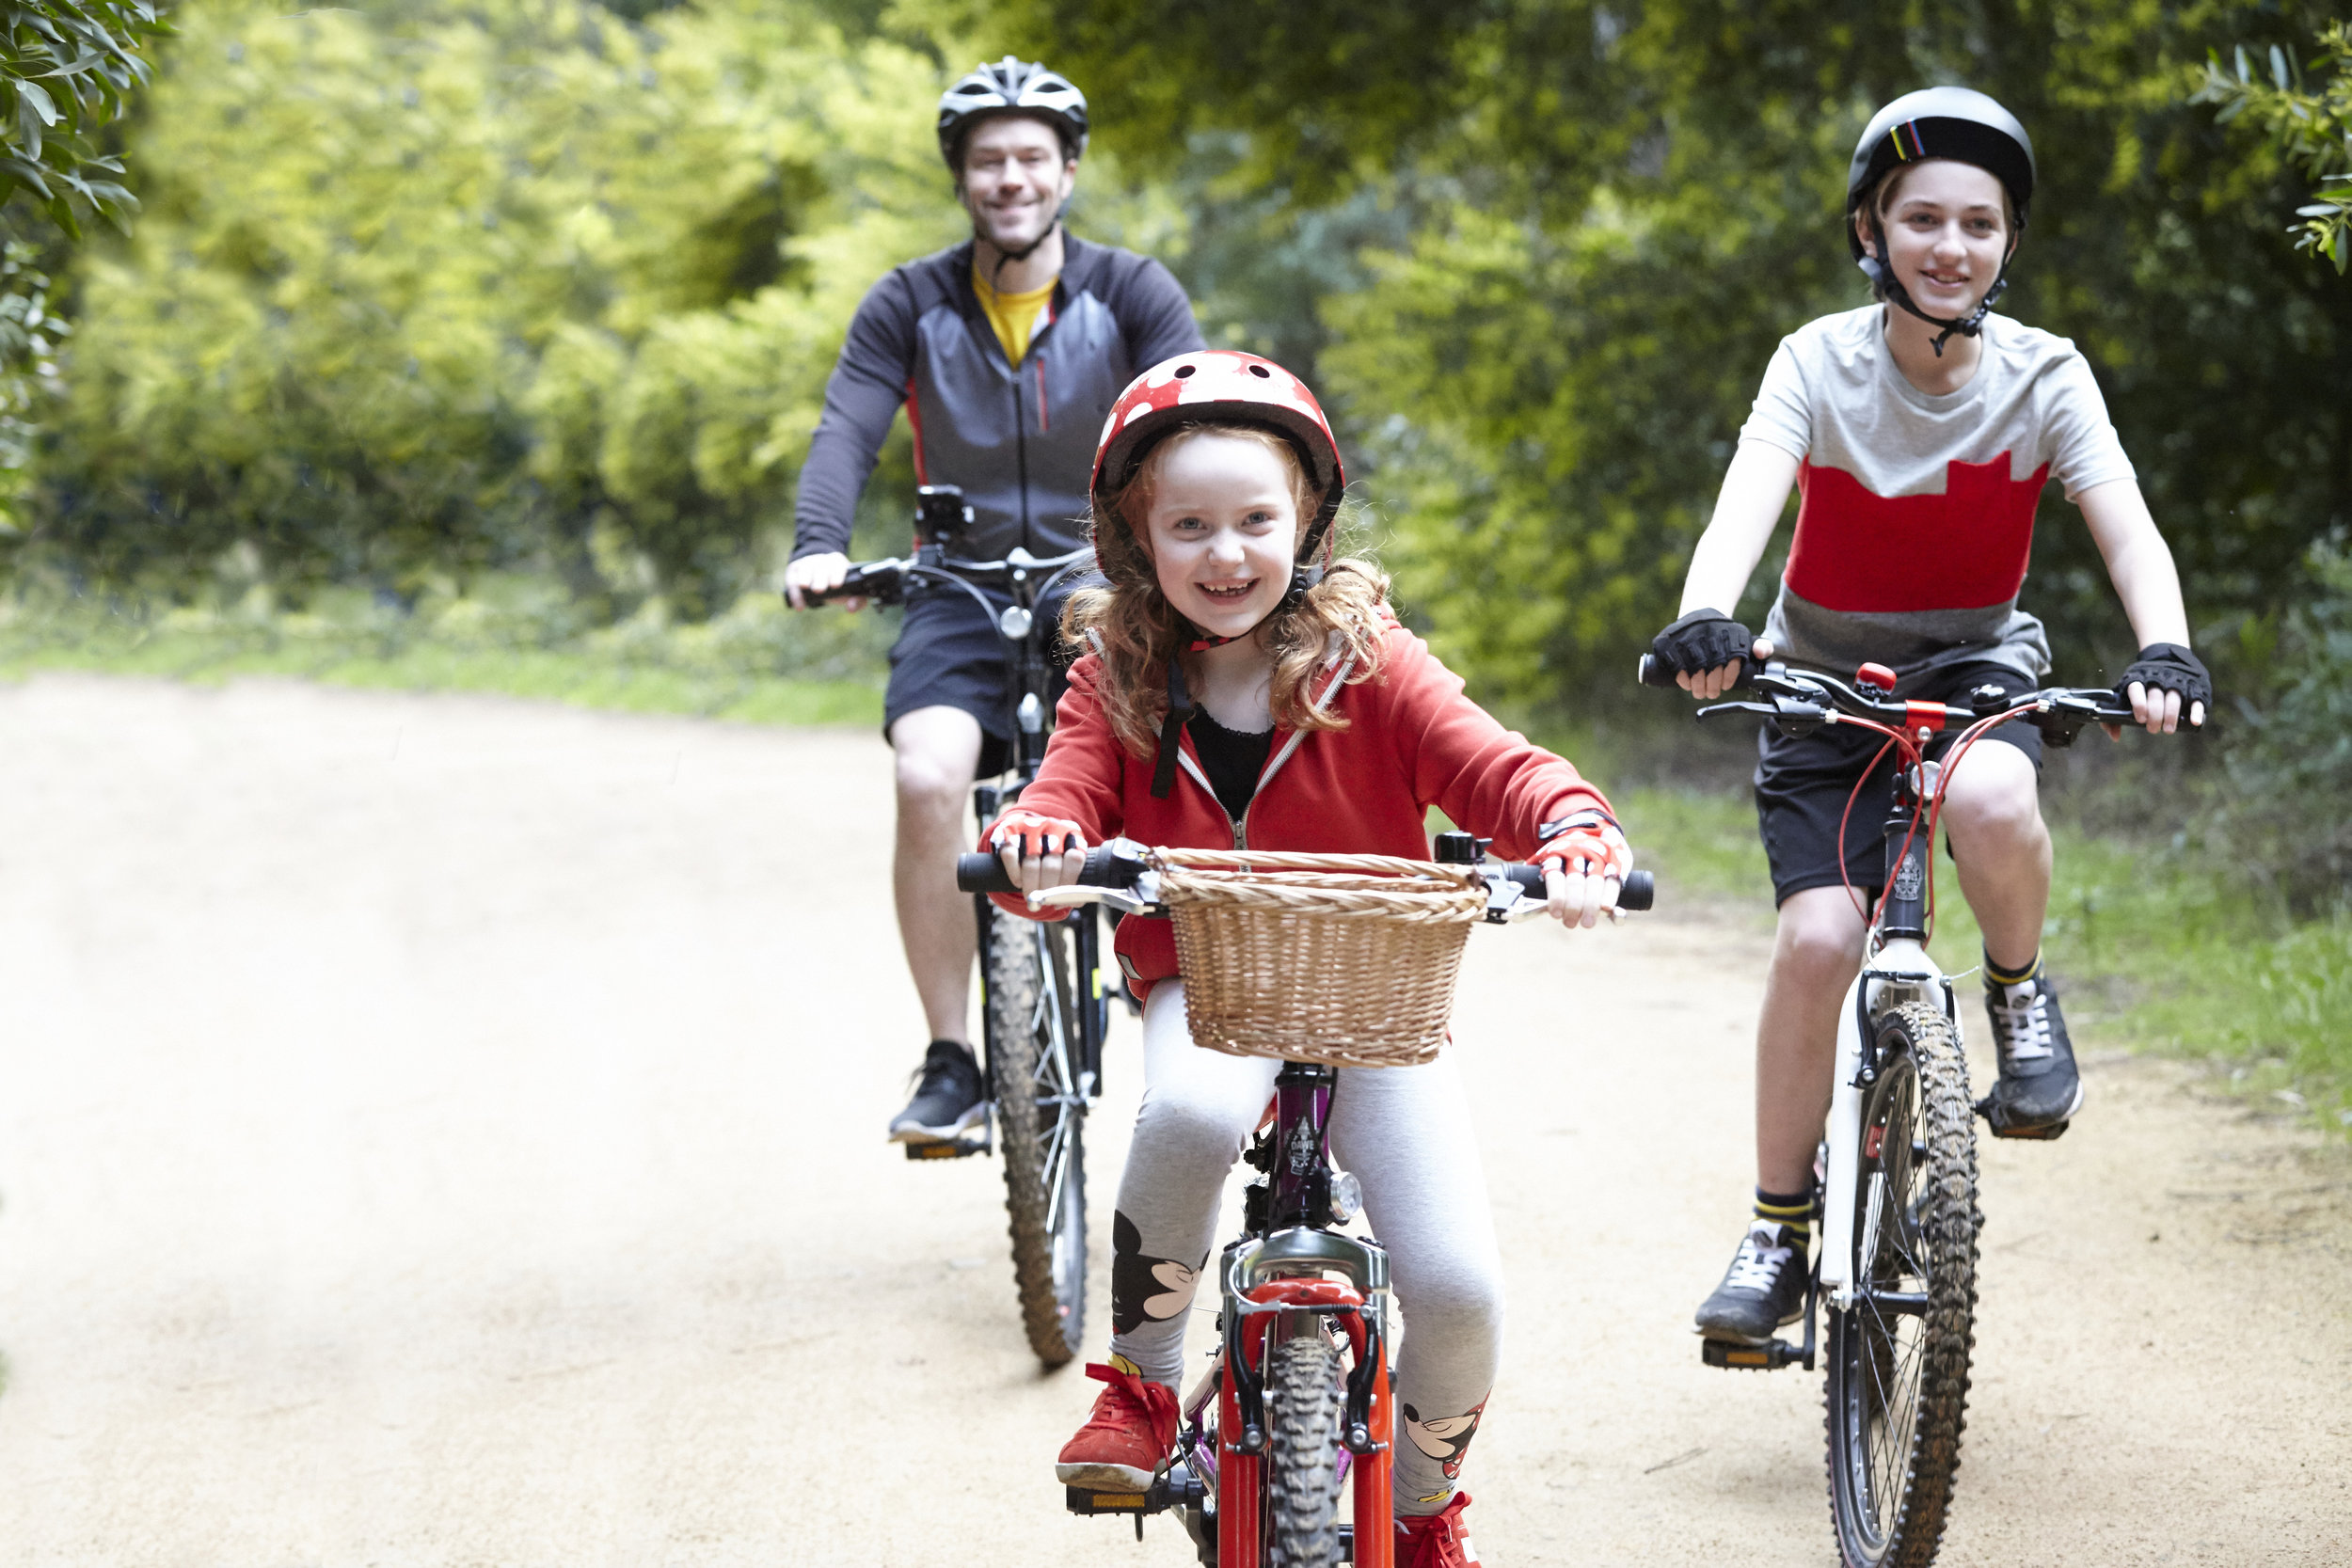 MickeyandFriends_Cycling_PublicityStills_21_master_Retouched.jpg